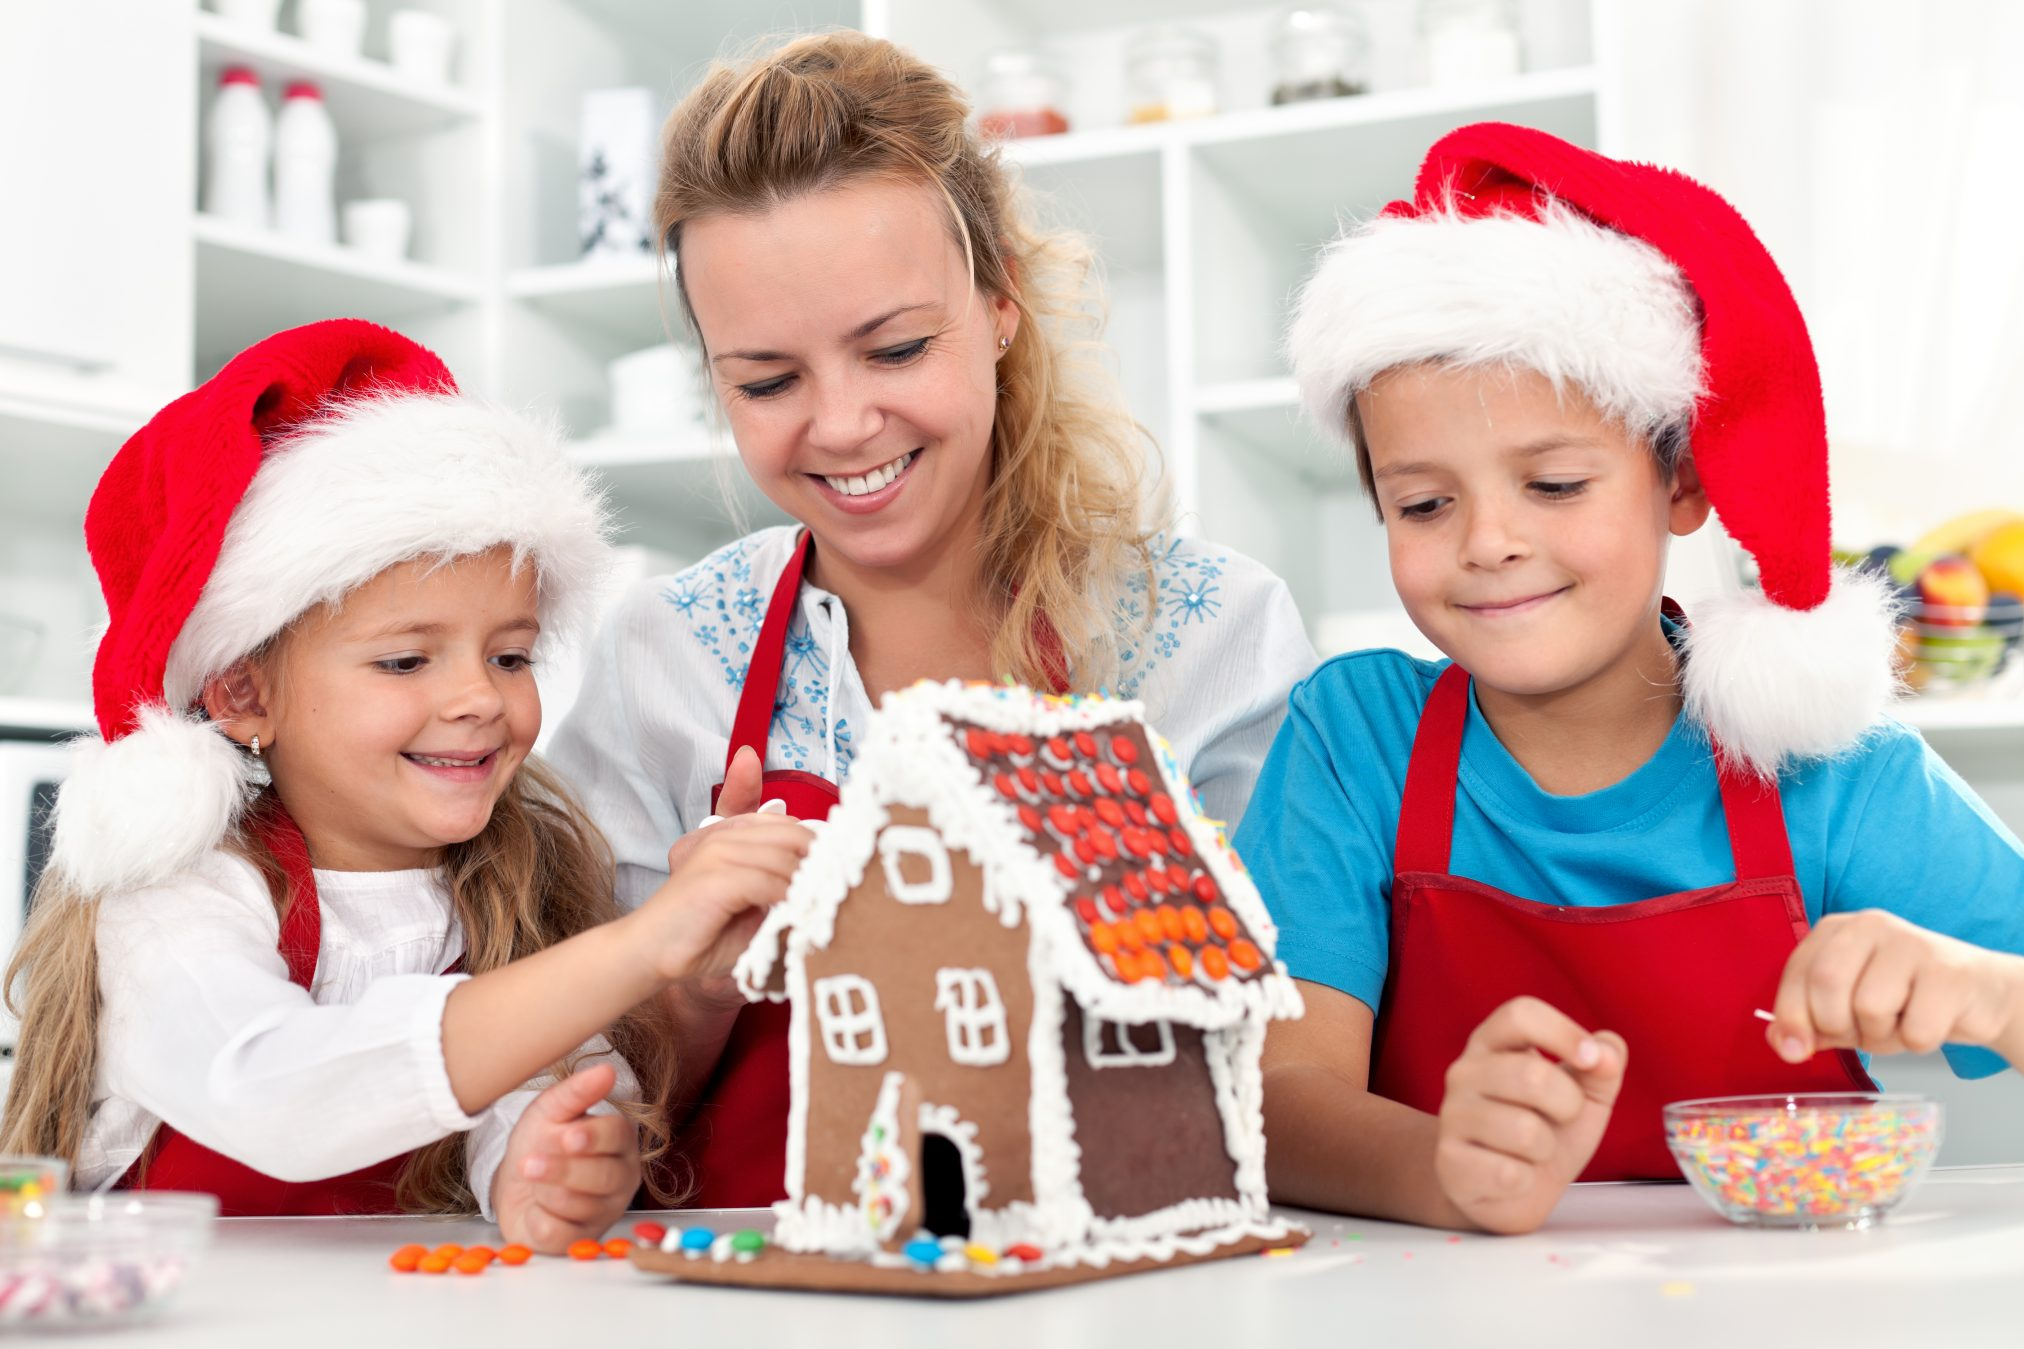 How to Make Christmas More Memorable for Your Family? Are you feeling the pressure to create a perfect holiday for your children? Here are easy and fun activities that you and your kids will love, minus the overwhelm. #christmas #familyfun #makingmemories #funmom #simpleChristmas #Christmasfamilyfun #family #christmasfamilytime #thisarethemoment #funfamilytime #makingmemoriestogether #slowandsimpledays #creativemommy #handsonlearning #learningwell